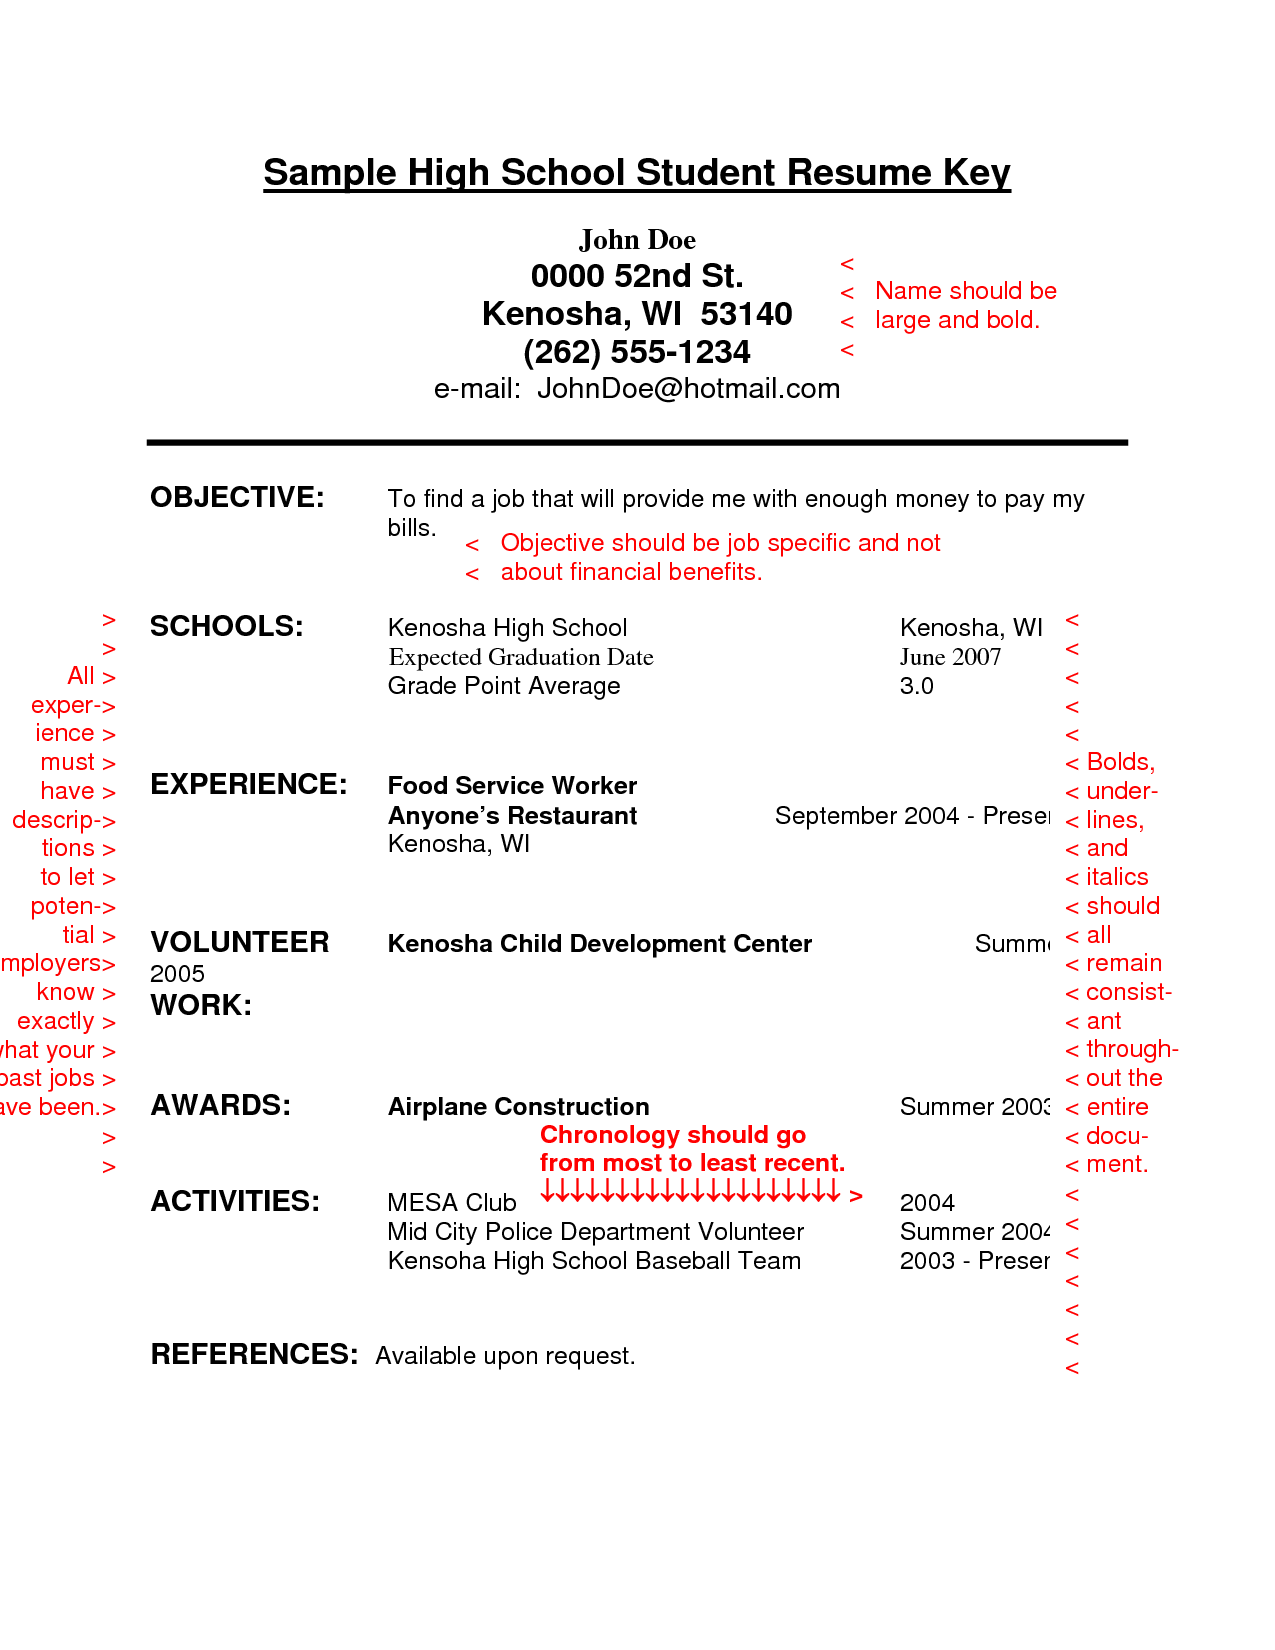 Superb Resume Sample For High School Students With No Experience   Http://www.  Resume For High School Student With No Job Experience